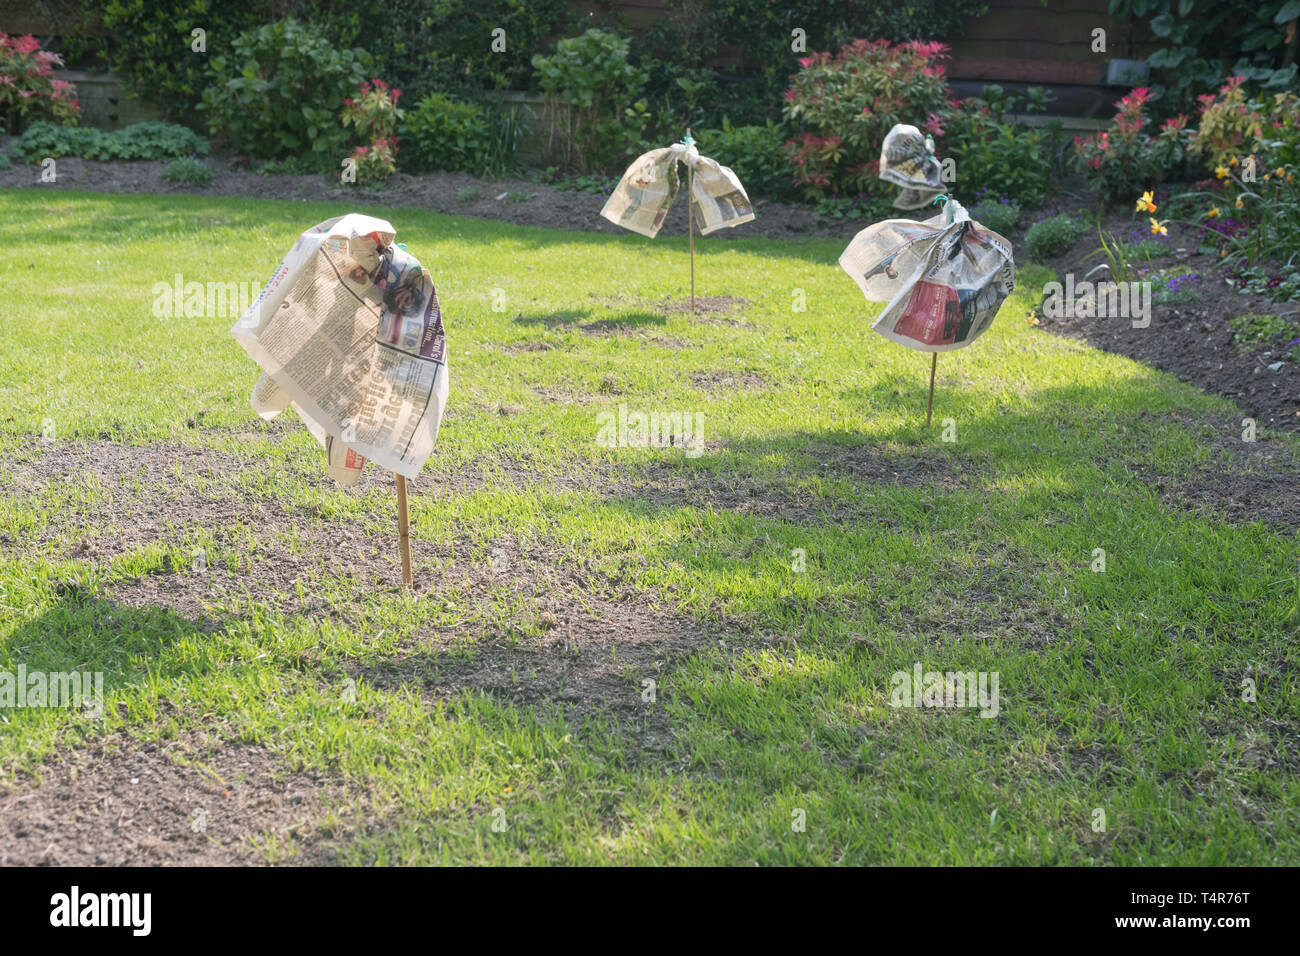 bird scarers made out of newspaper on repaired and newly seeded garden lawn - uk - Stock Image